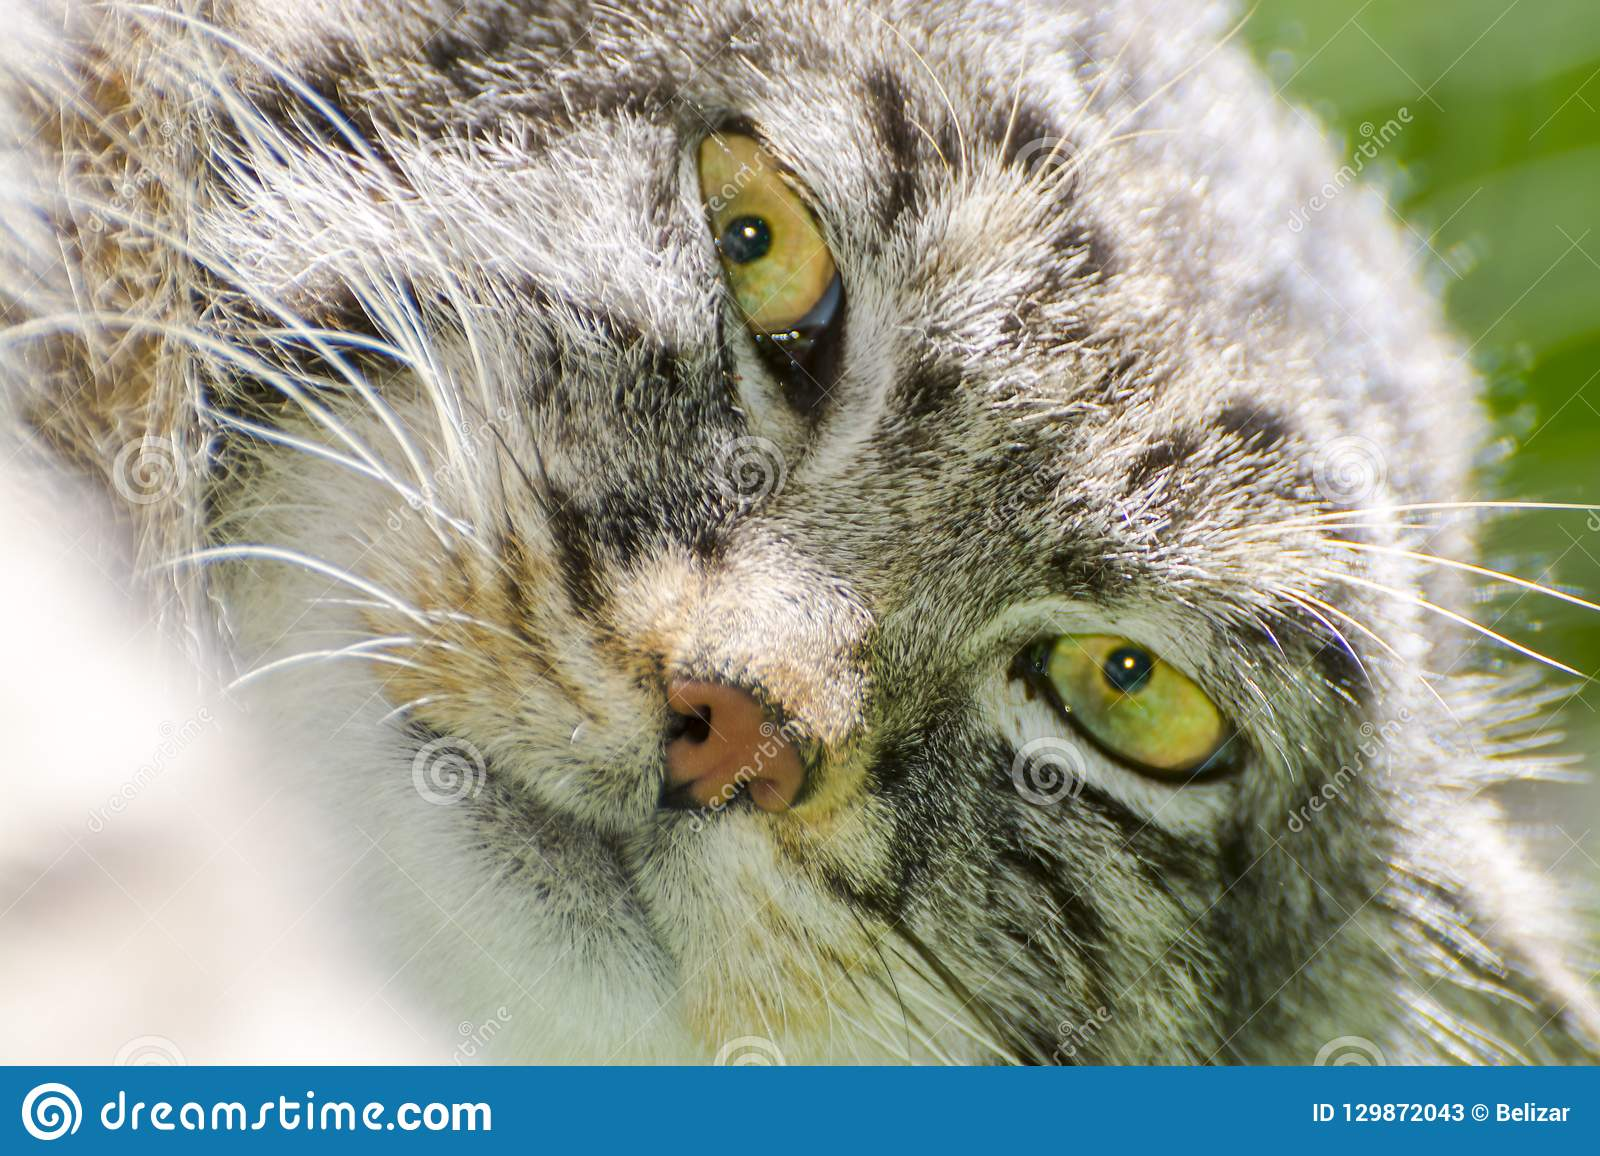 The Manul Face